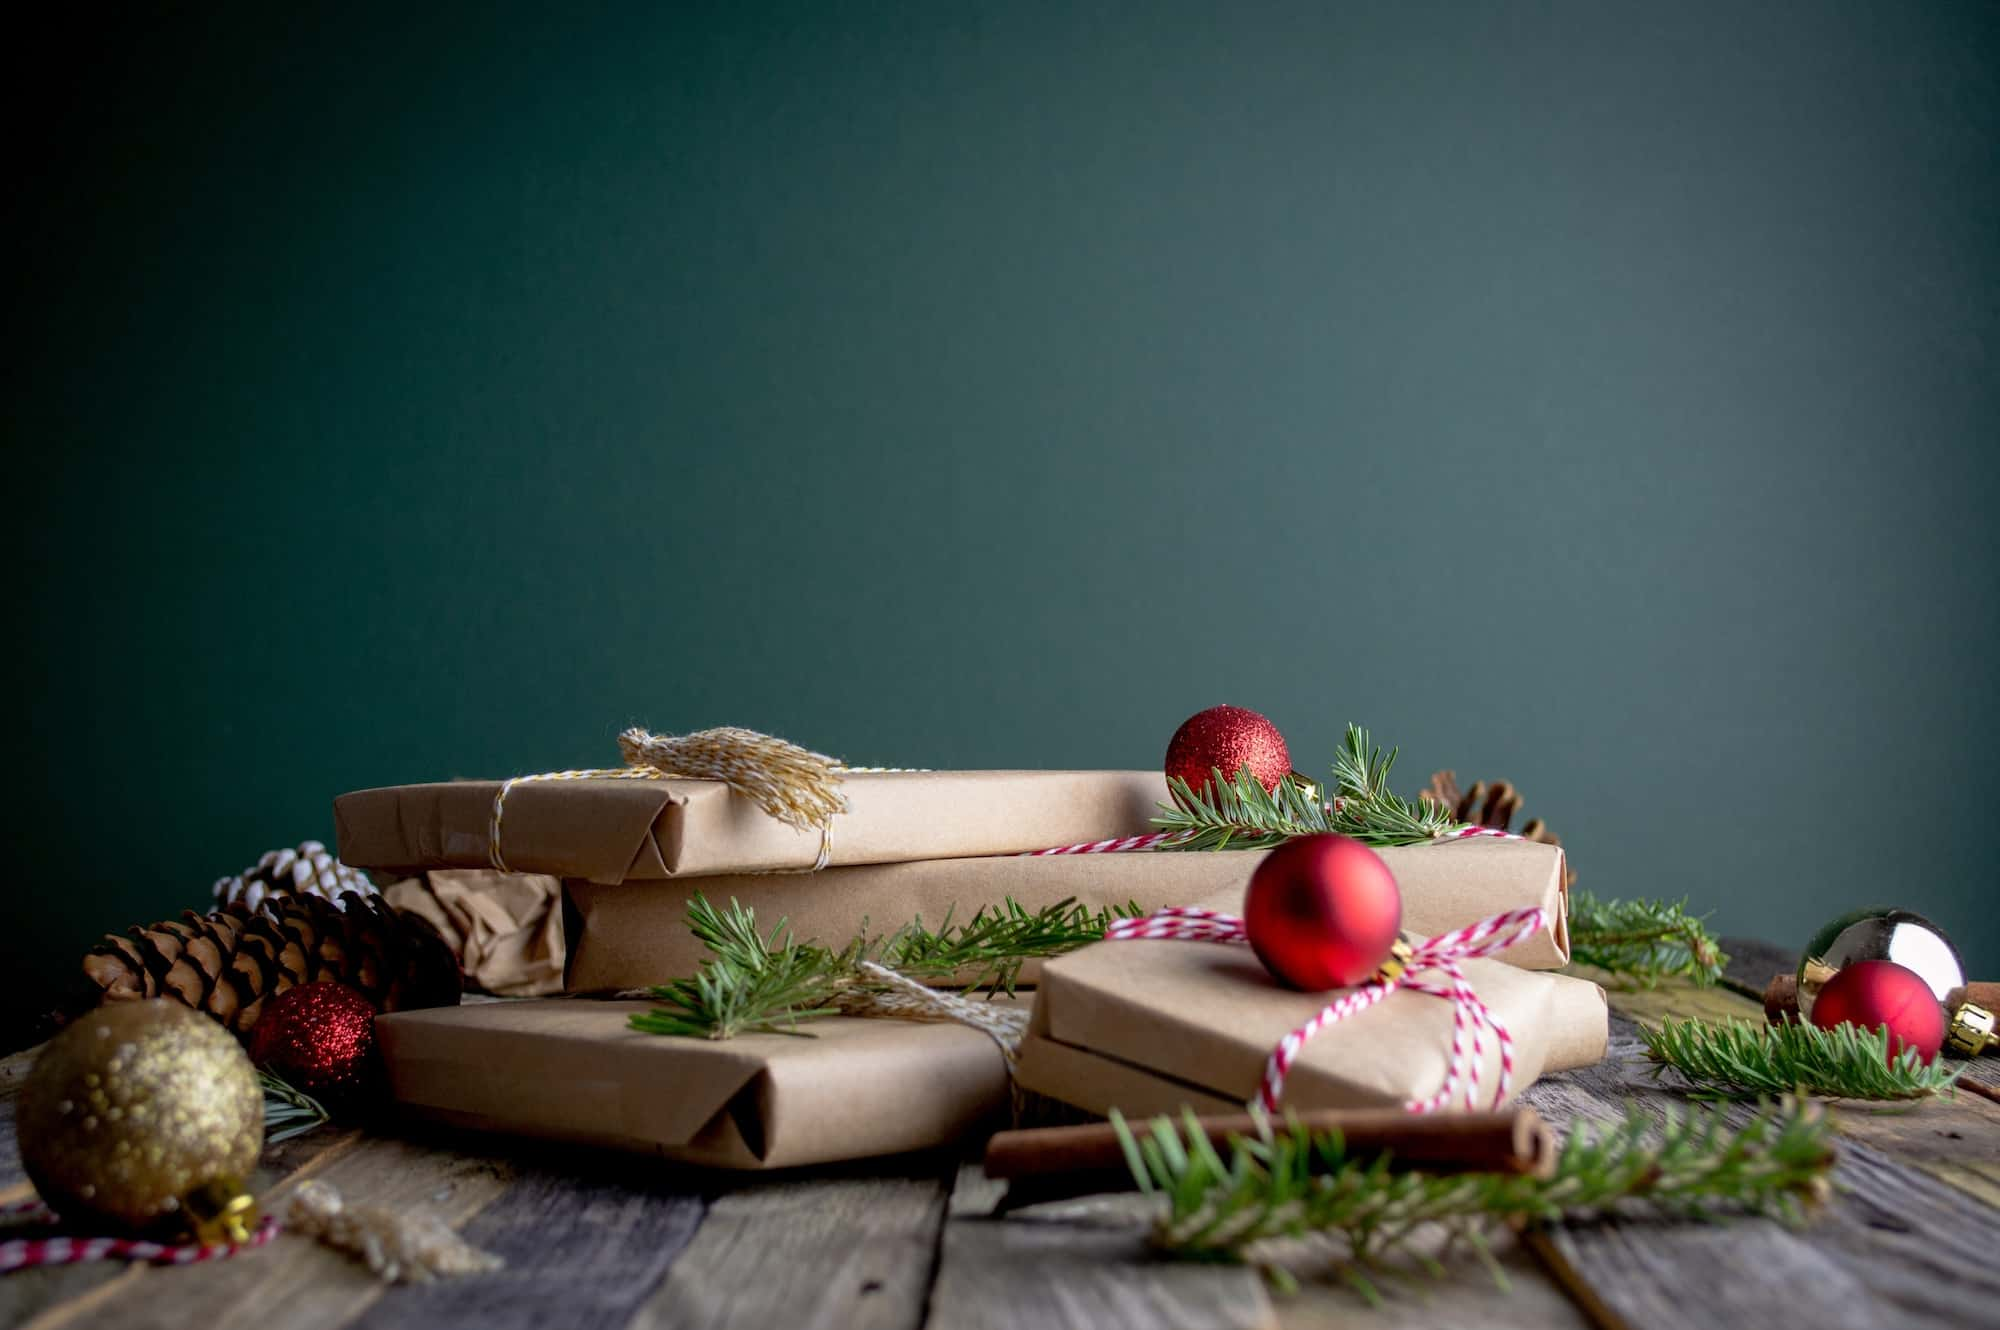 Sustainable Gift Guide for the Holidays